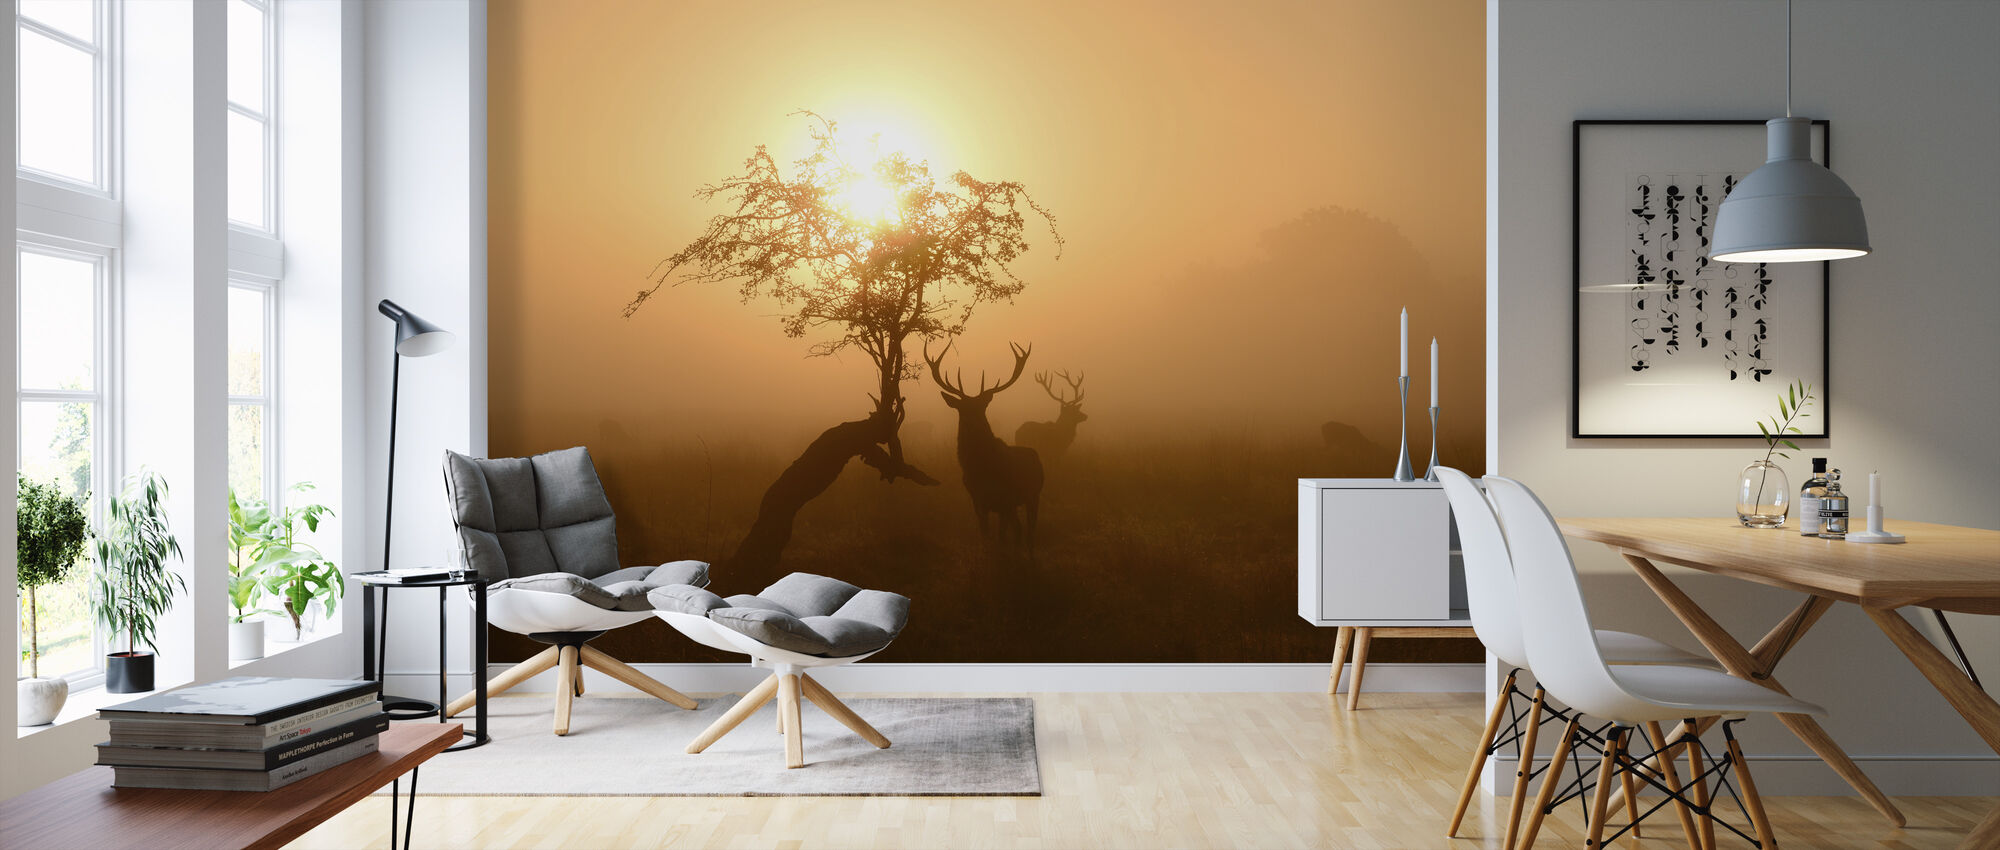 Sun and Deers - Wallpaper - Living Room